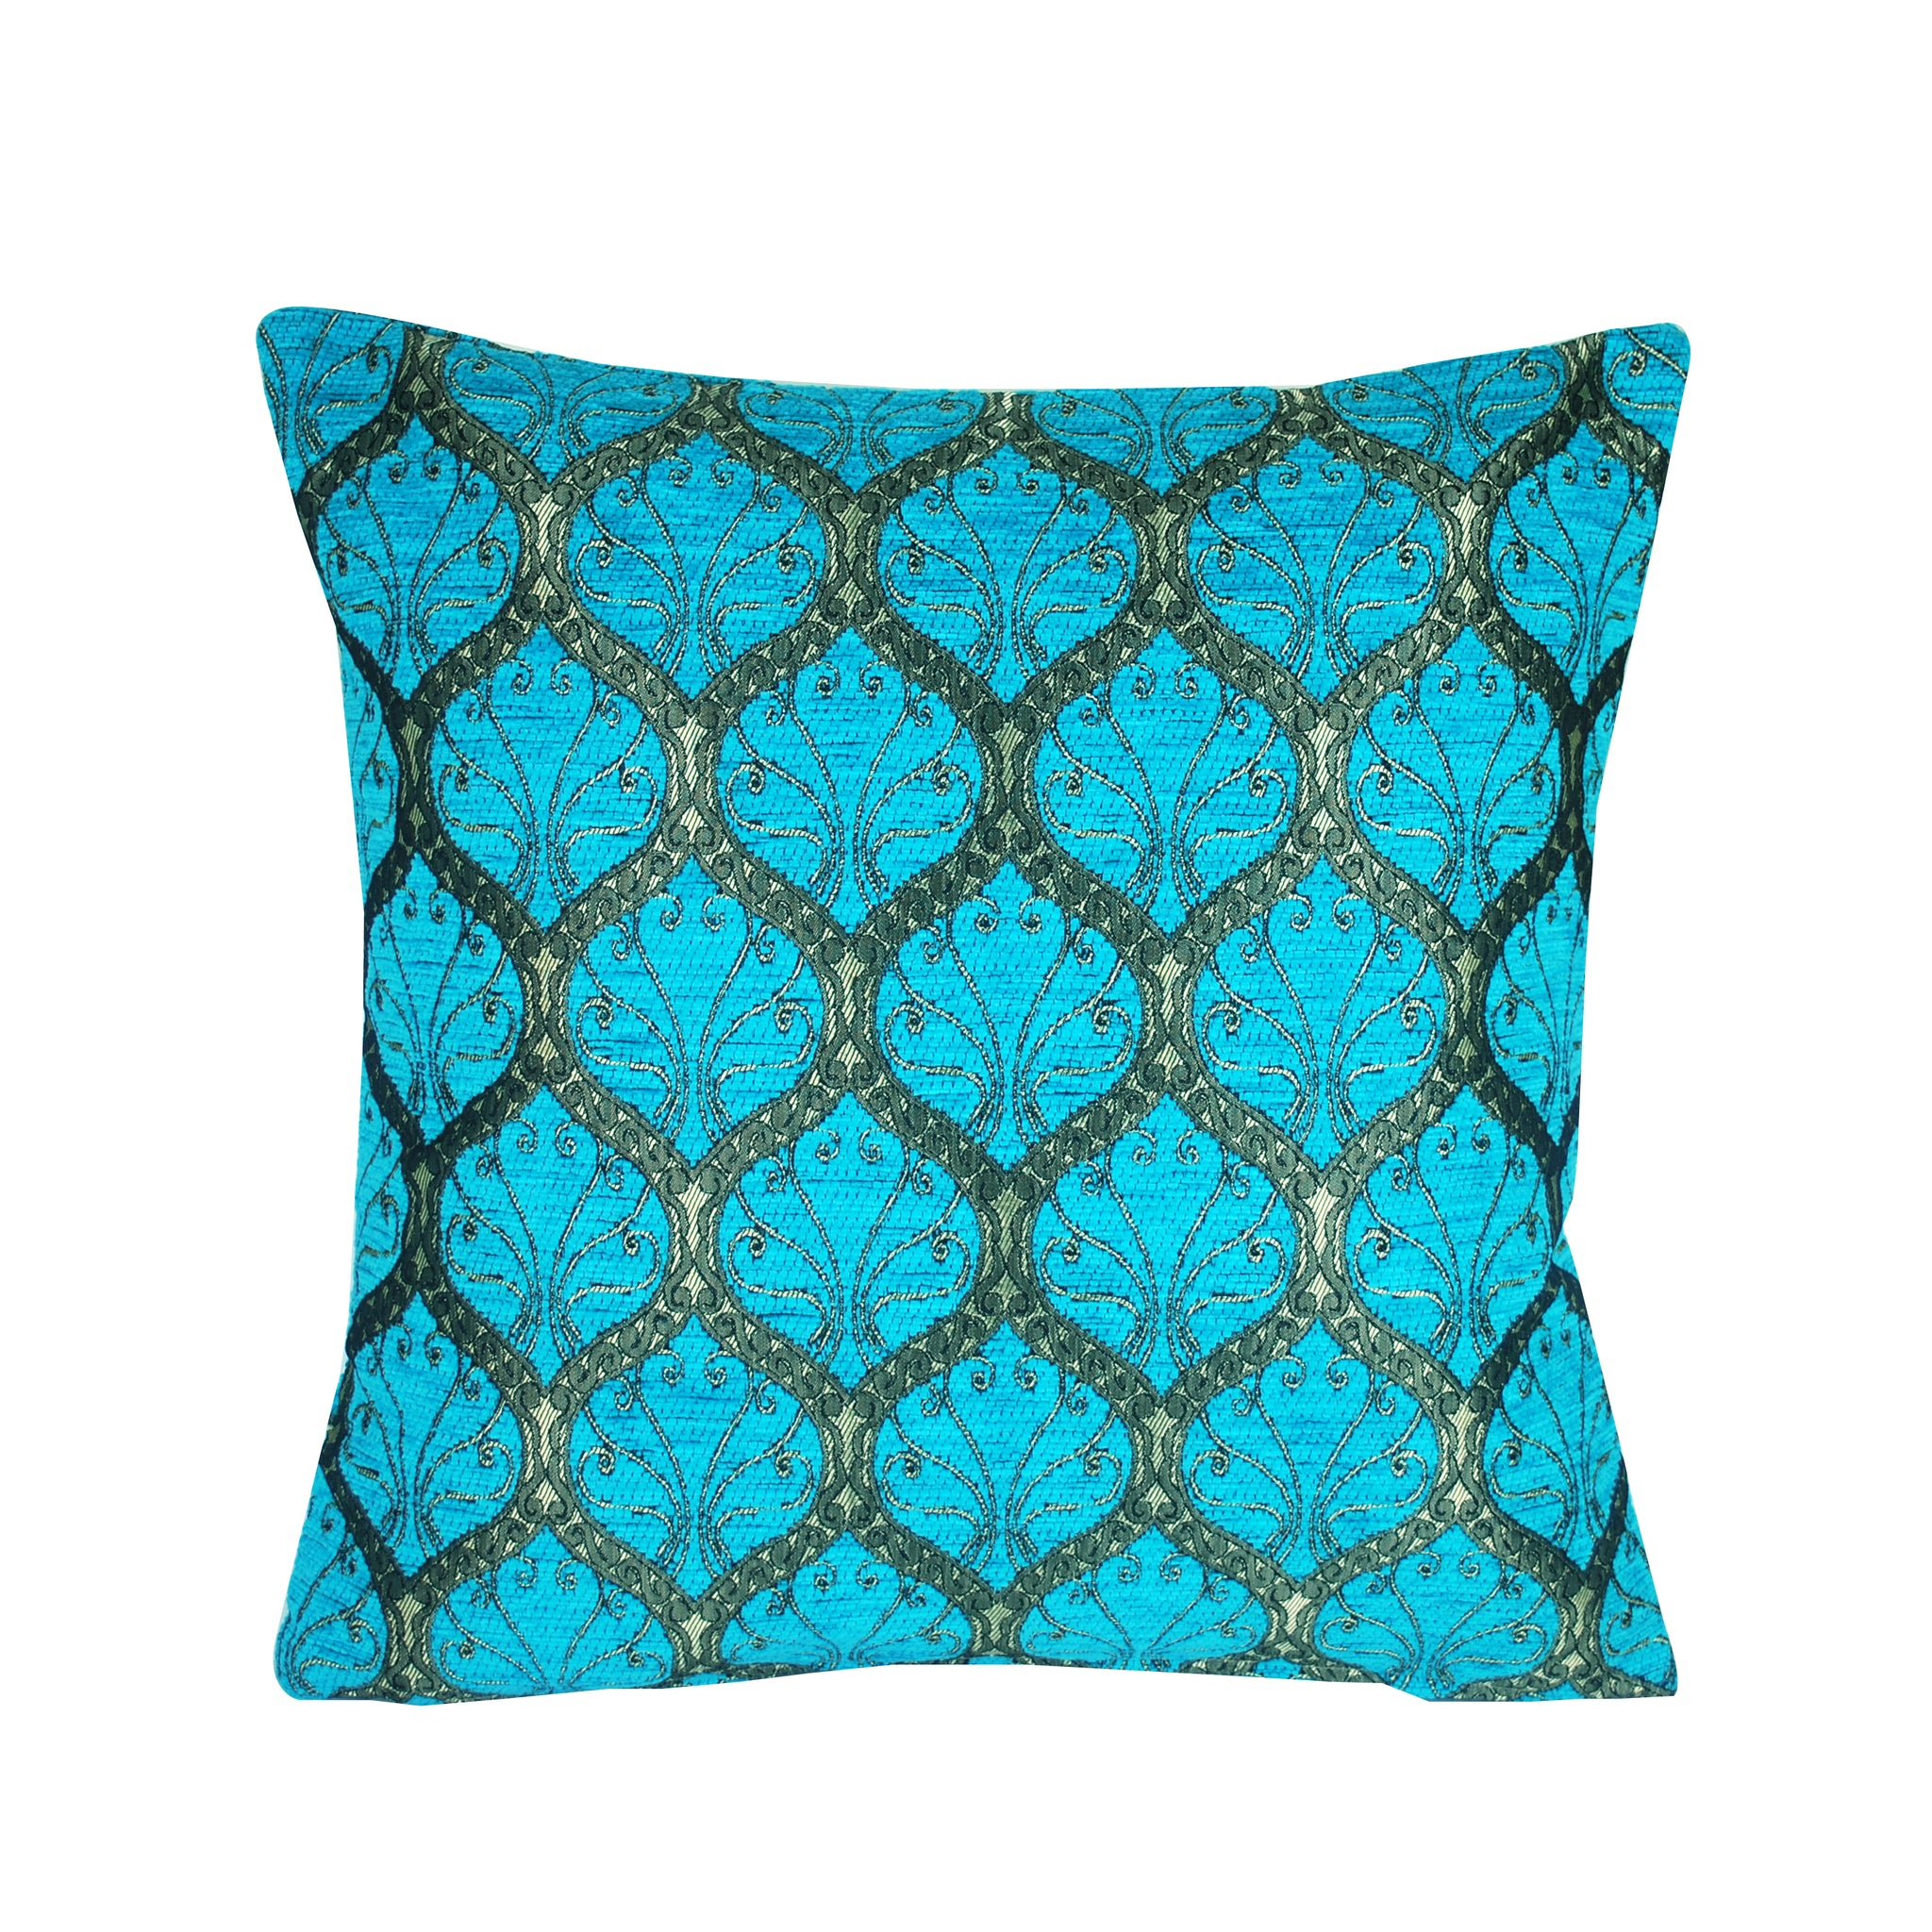 Traditional Turkish Handmade Cushion 42x42cm ET-M81 Turquoise